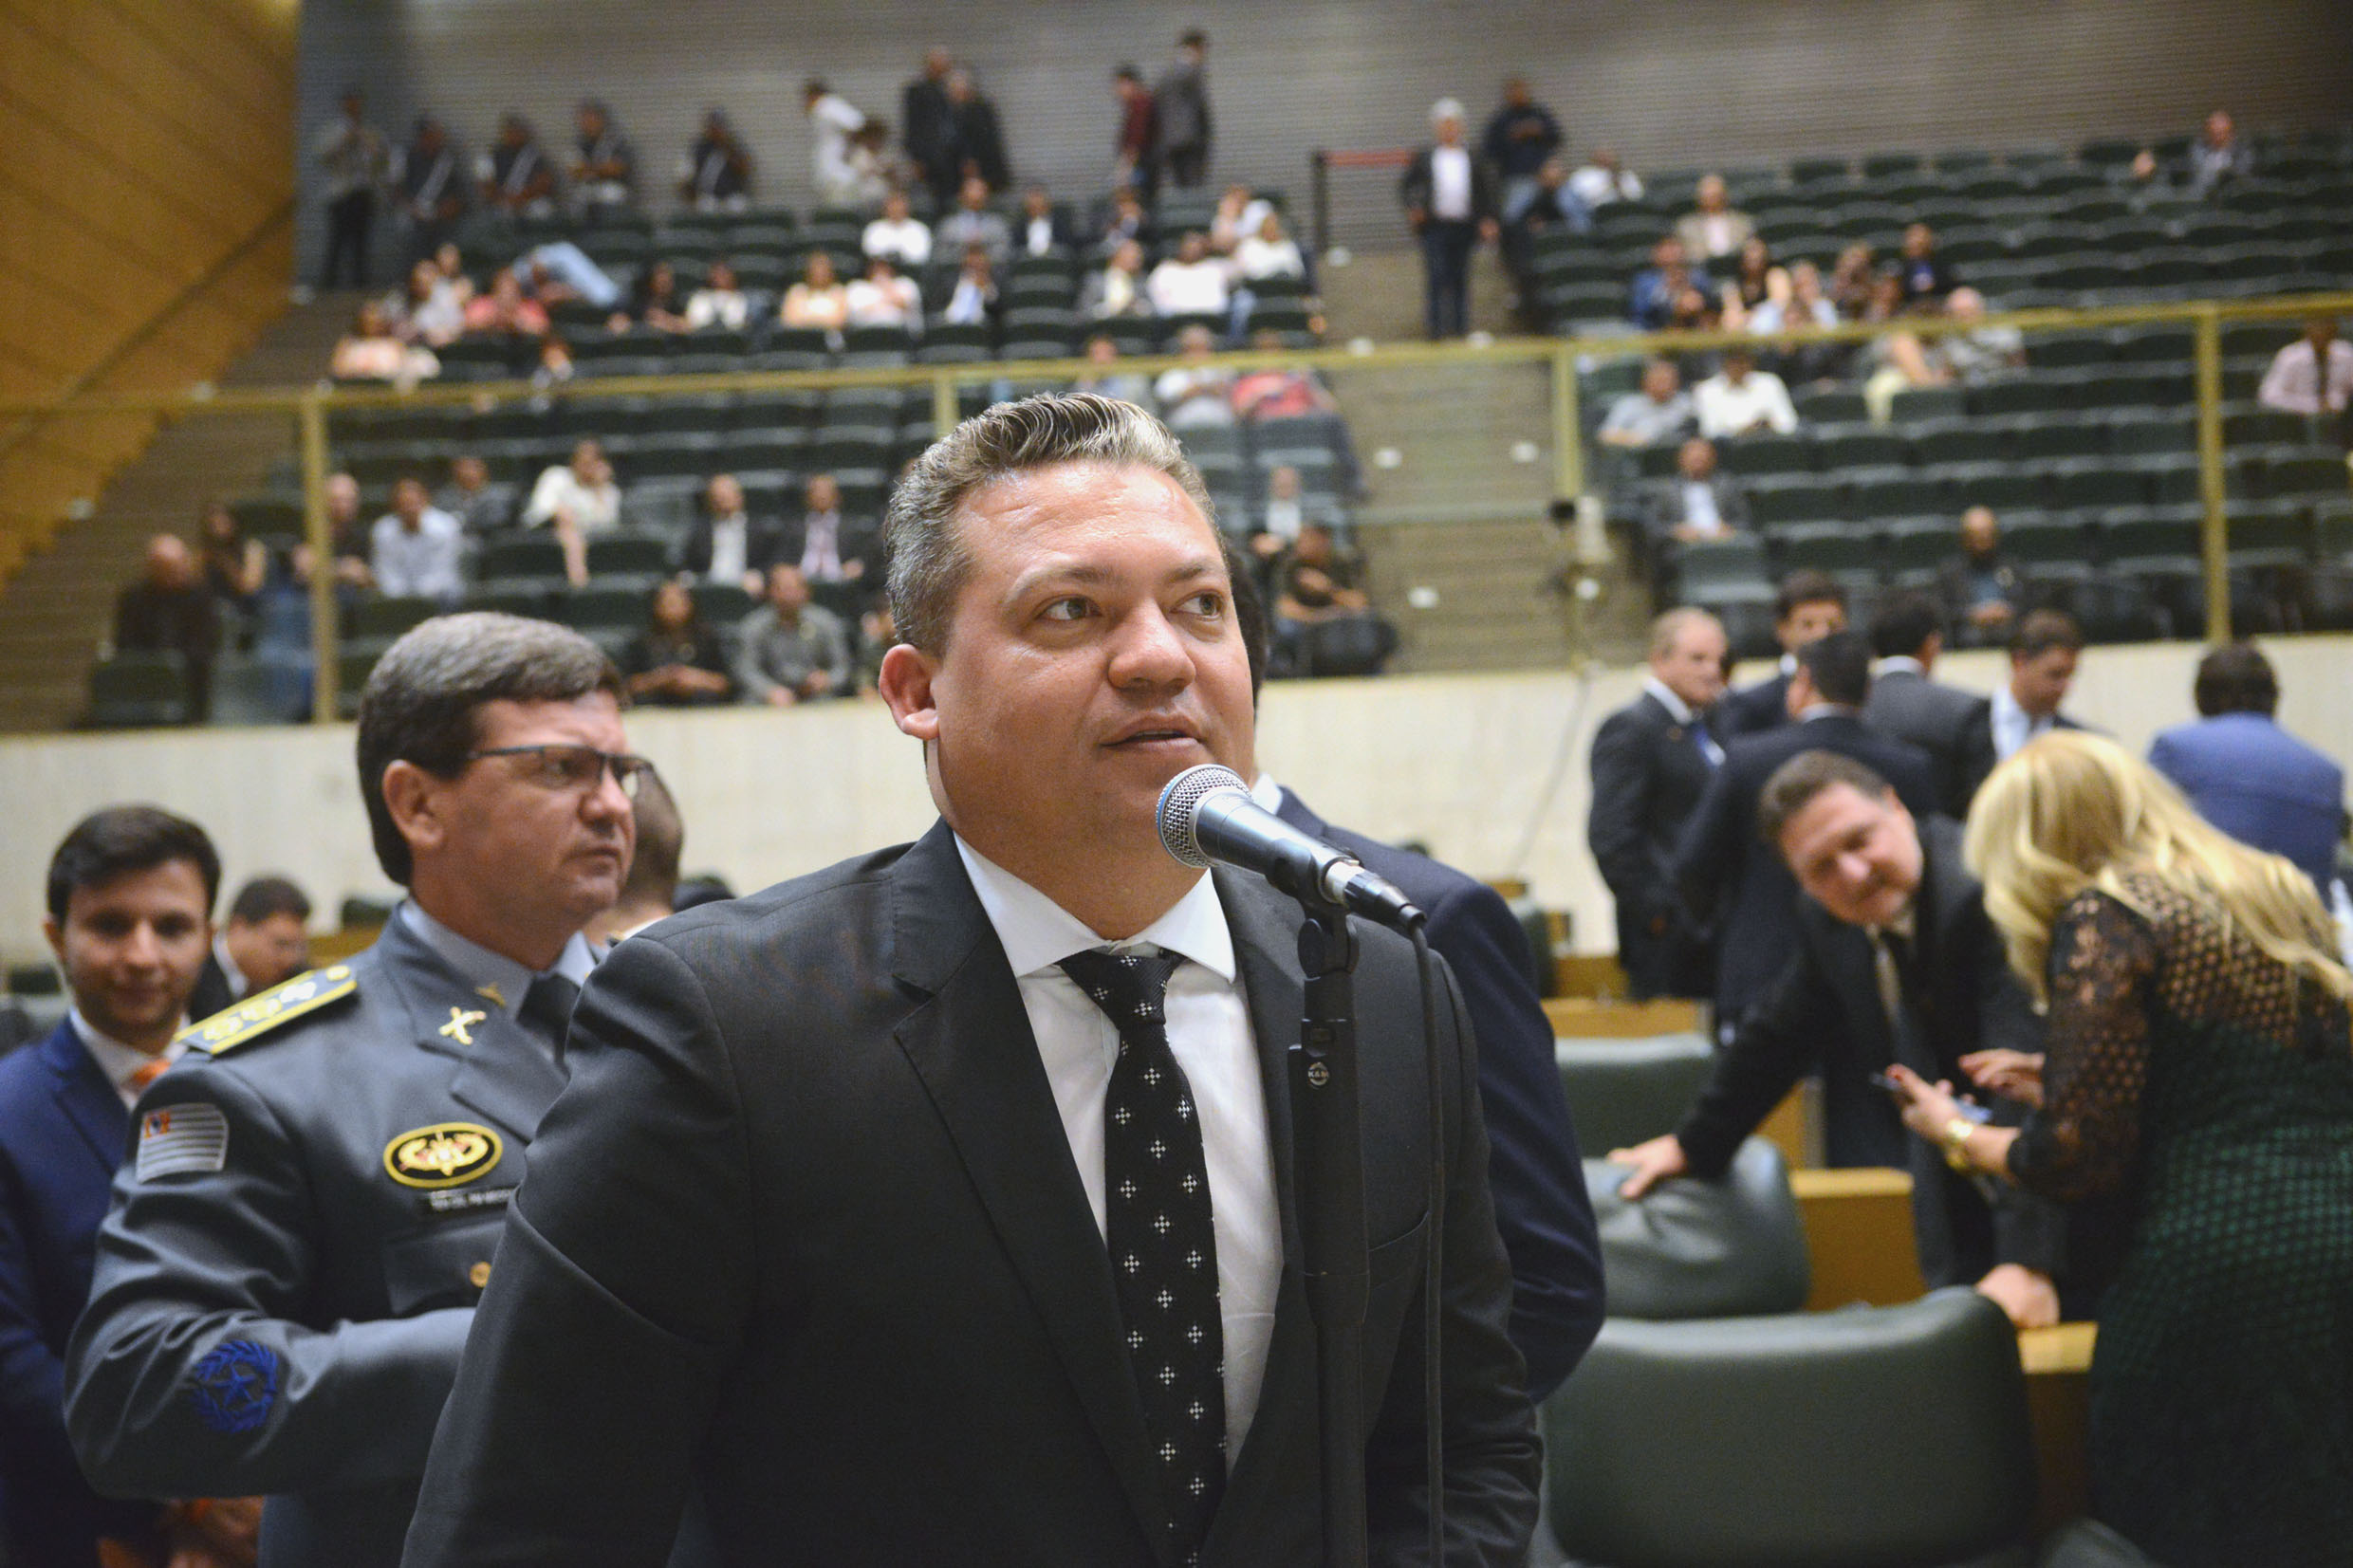 Paulo Correa Jr (PATRI)<a style='float:right' href='https://www3.al.sp.gov.br/repositorio/noticia/N-03-2019/fg231766.jpg' target=_blank><img src='/_img/material-file-download-white.png' width='14px' alt='Clique para baixar a imagem'></a>